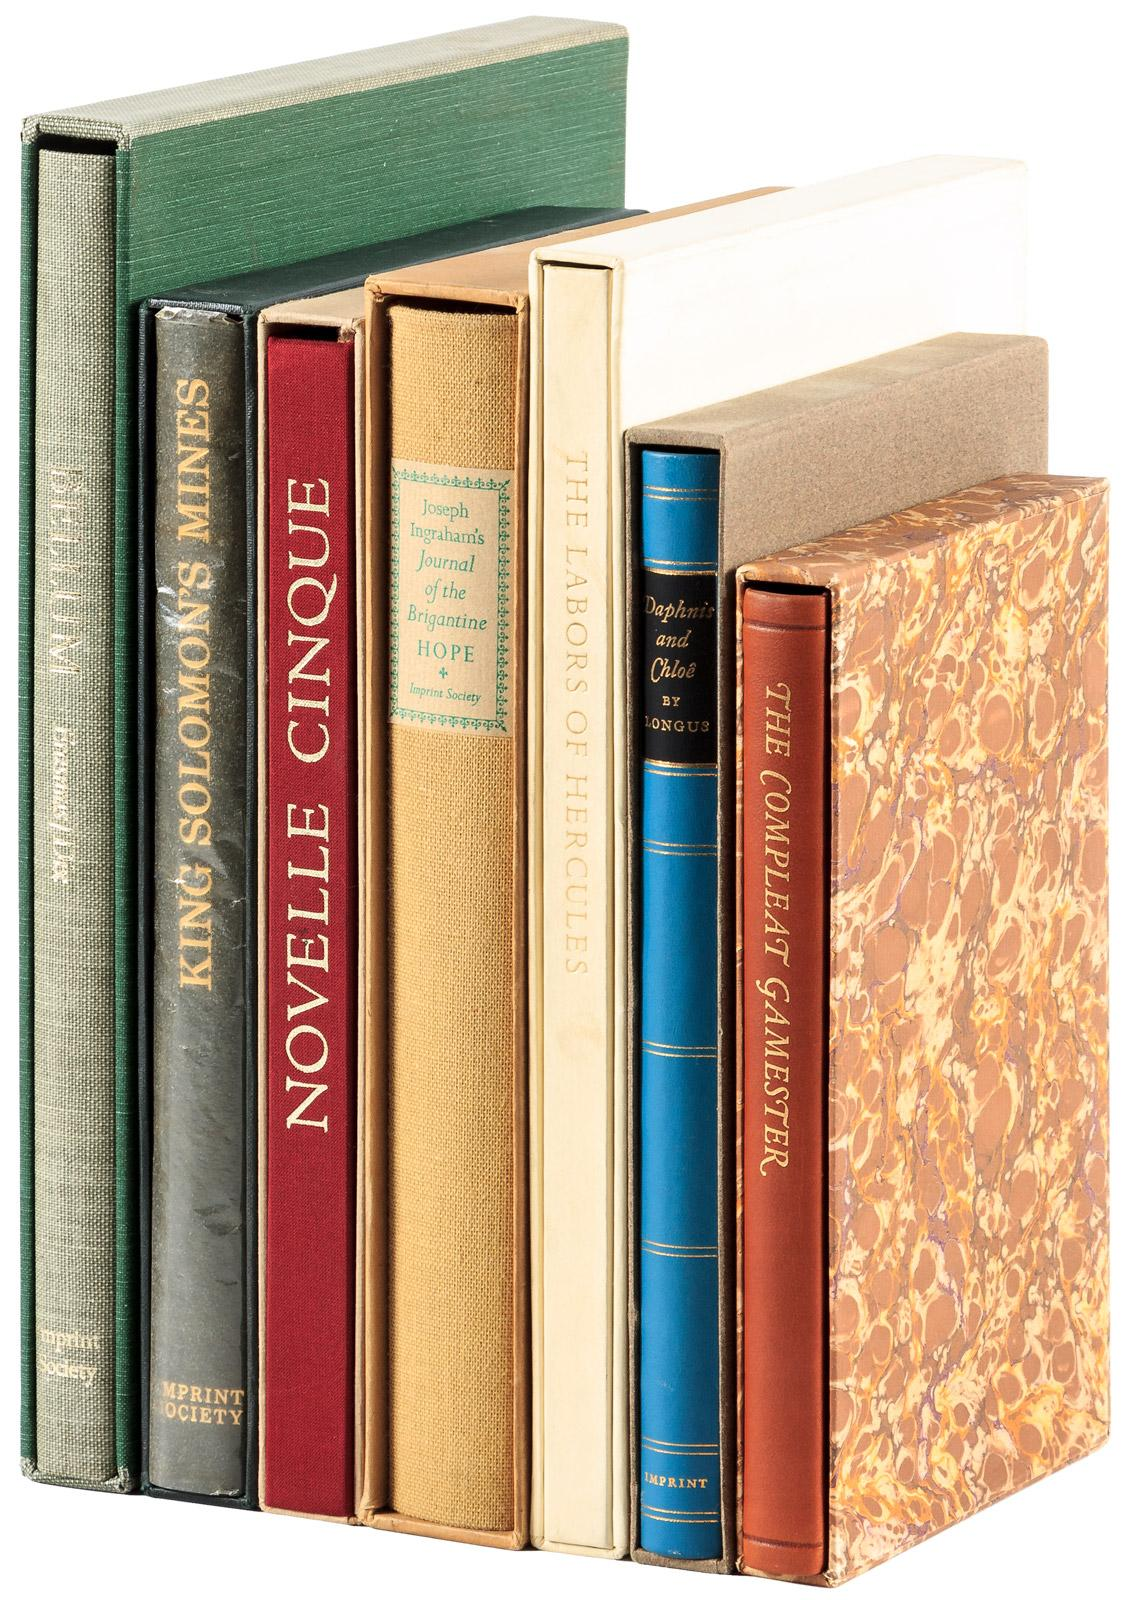 Seven classic works reprinted by the Imprint Society - Price